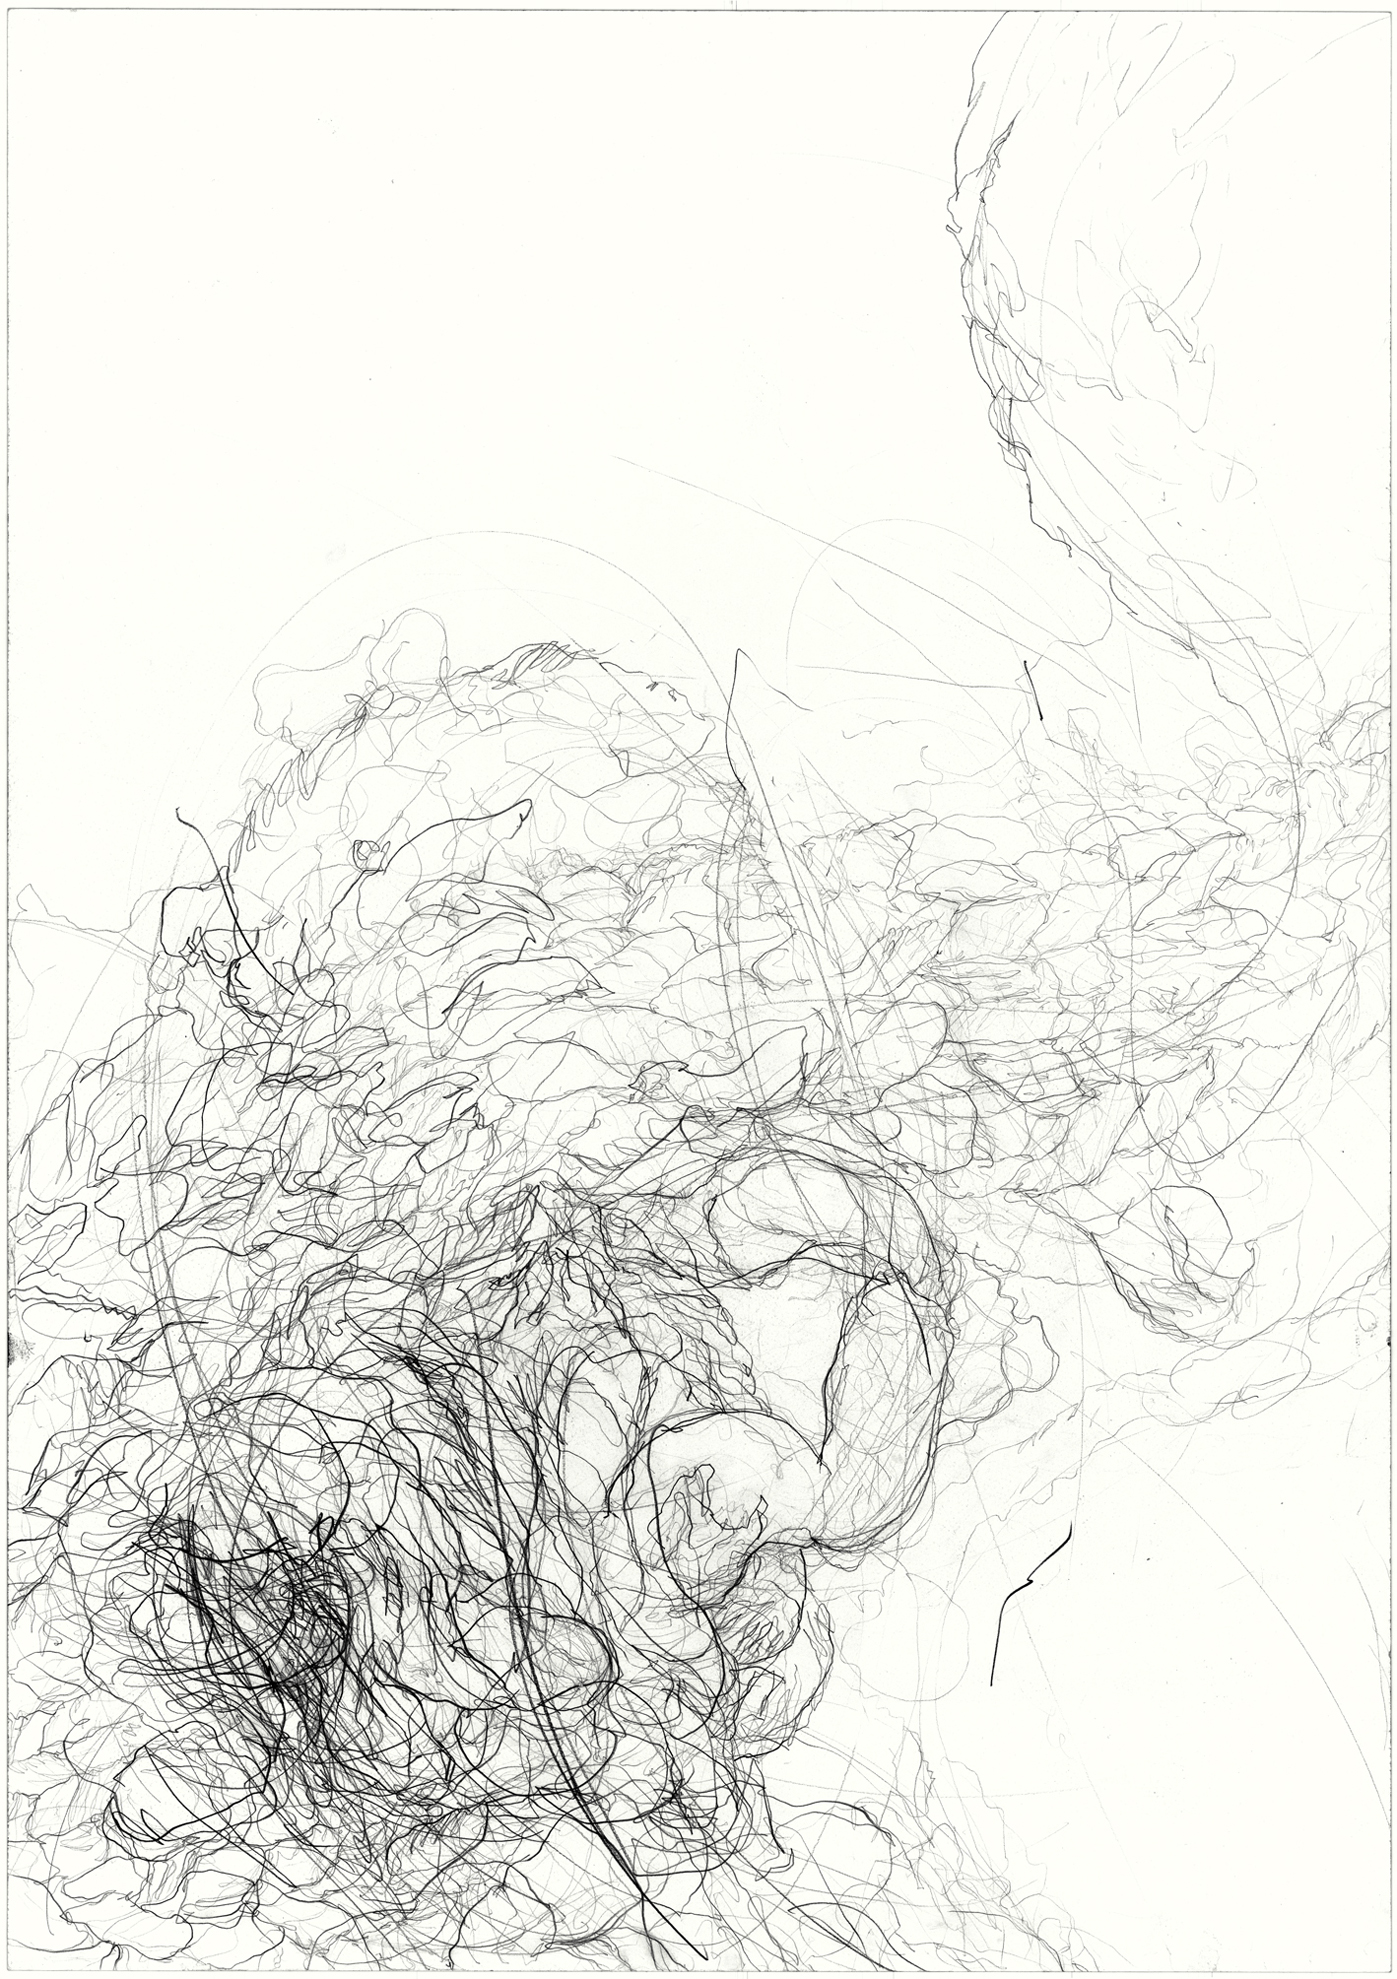 Undercurrent  2011, pencil on paper, 84.1 cm x 59.5 cm.